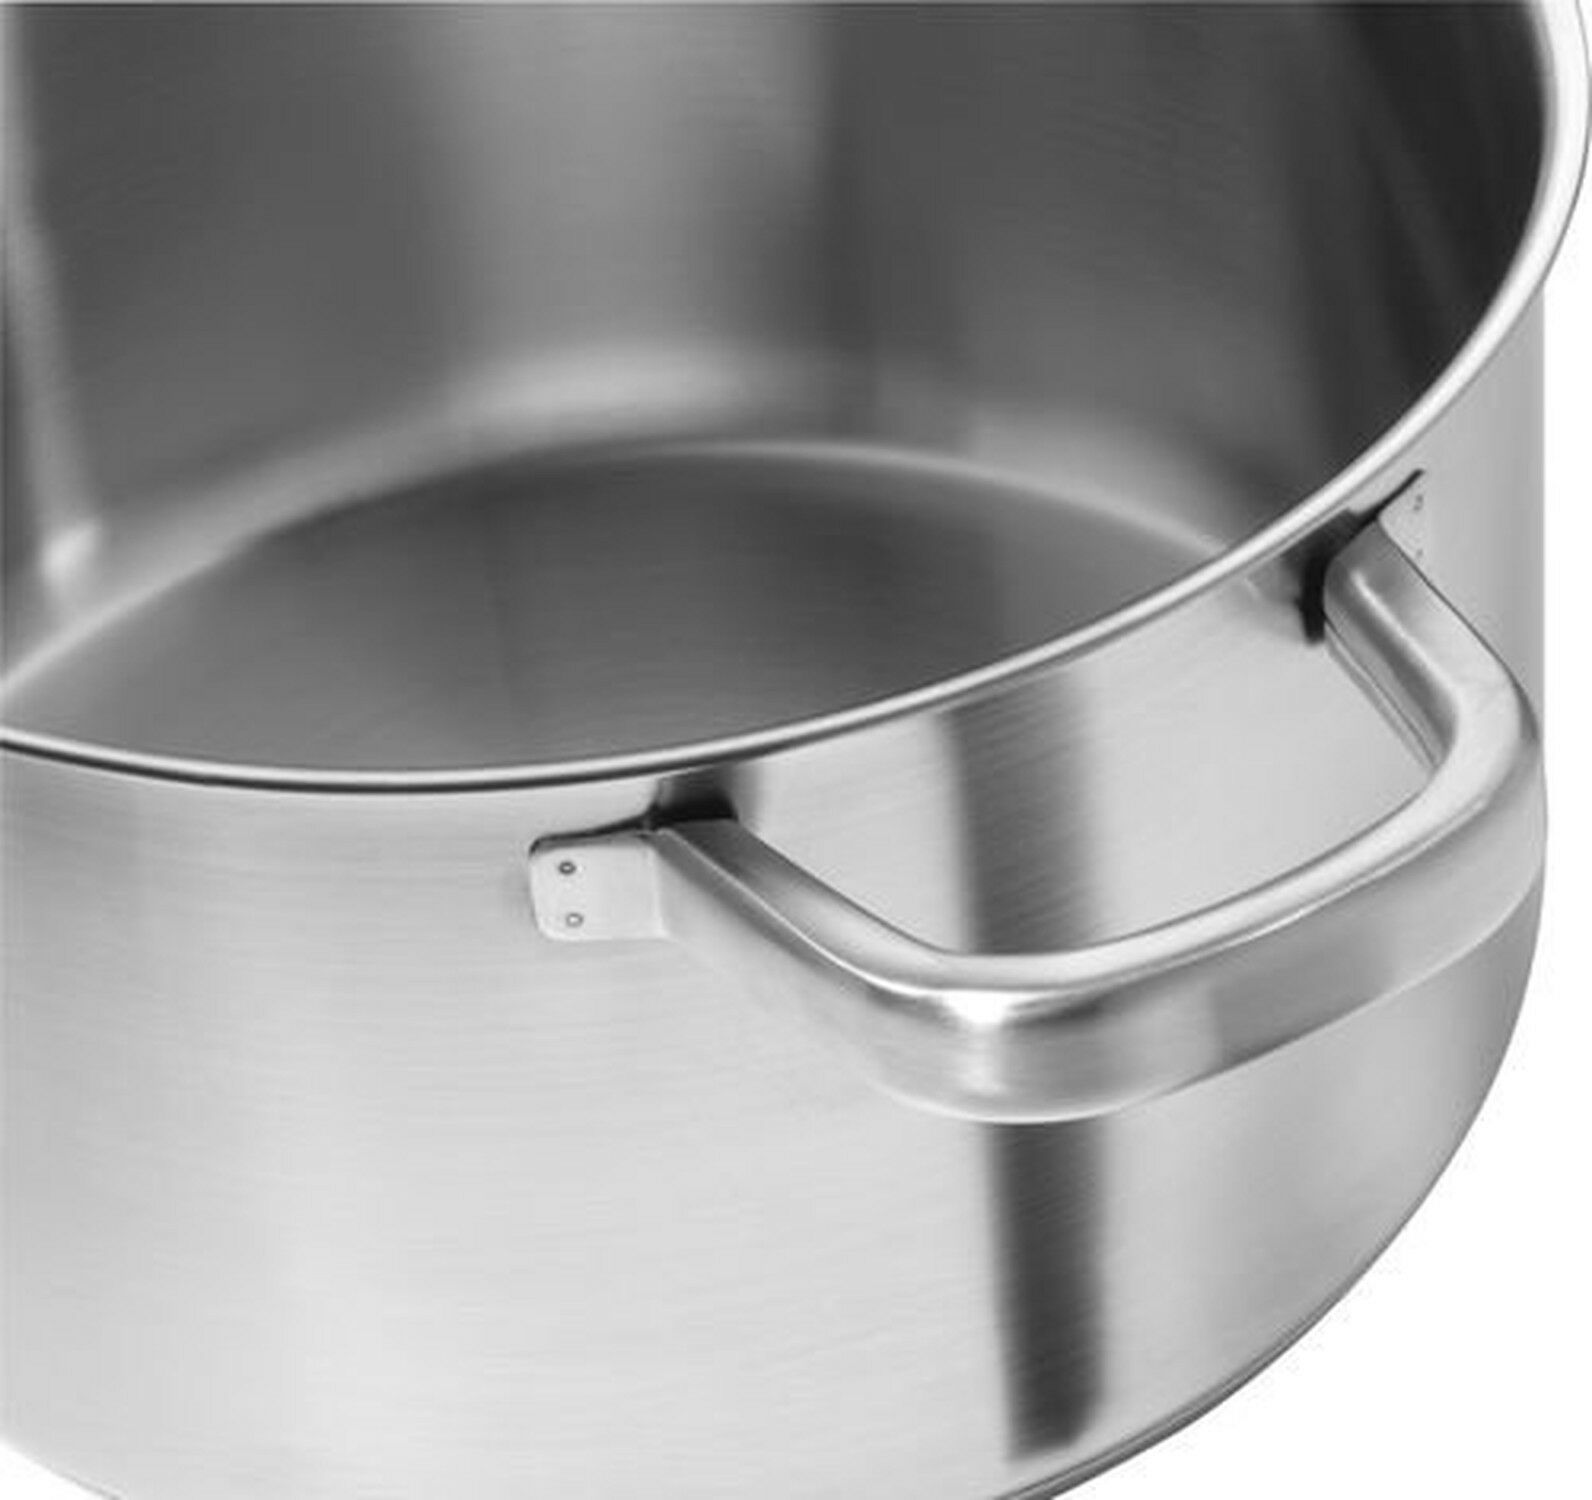 Zwilling Joy Acier Inoxydable Cookware Cookware Inoxydable Set, argent, 3 pièces 3 pièces a1aab1